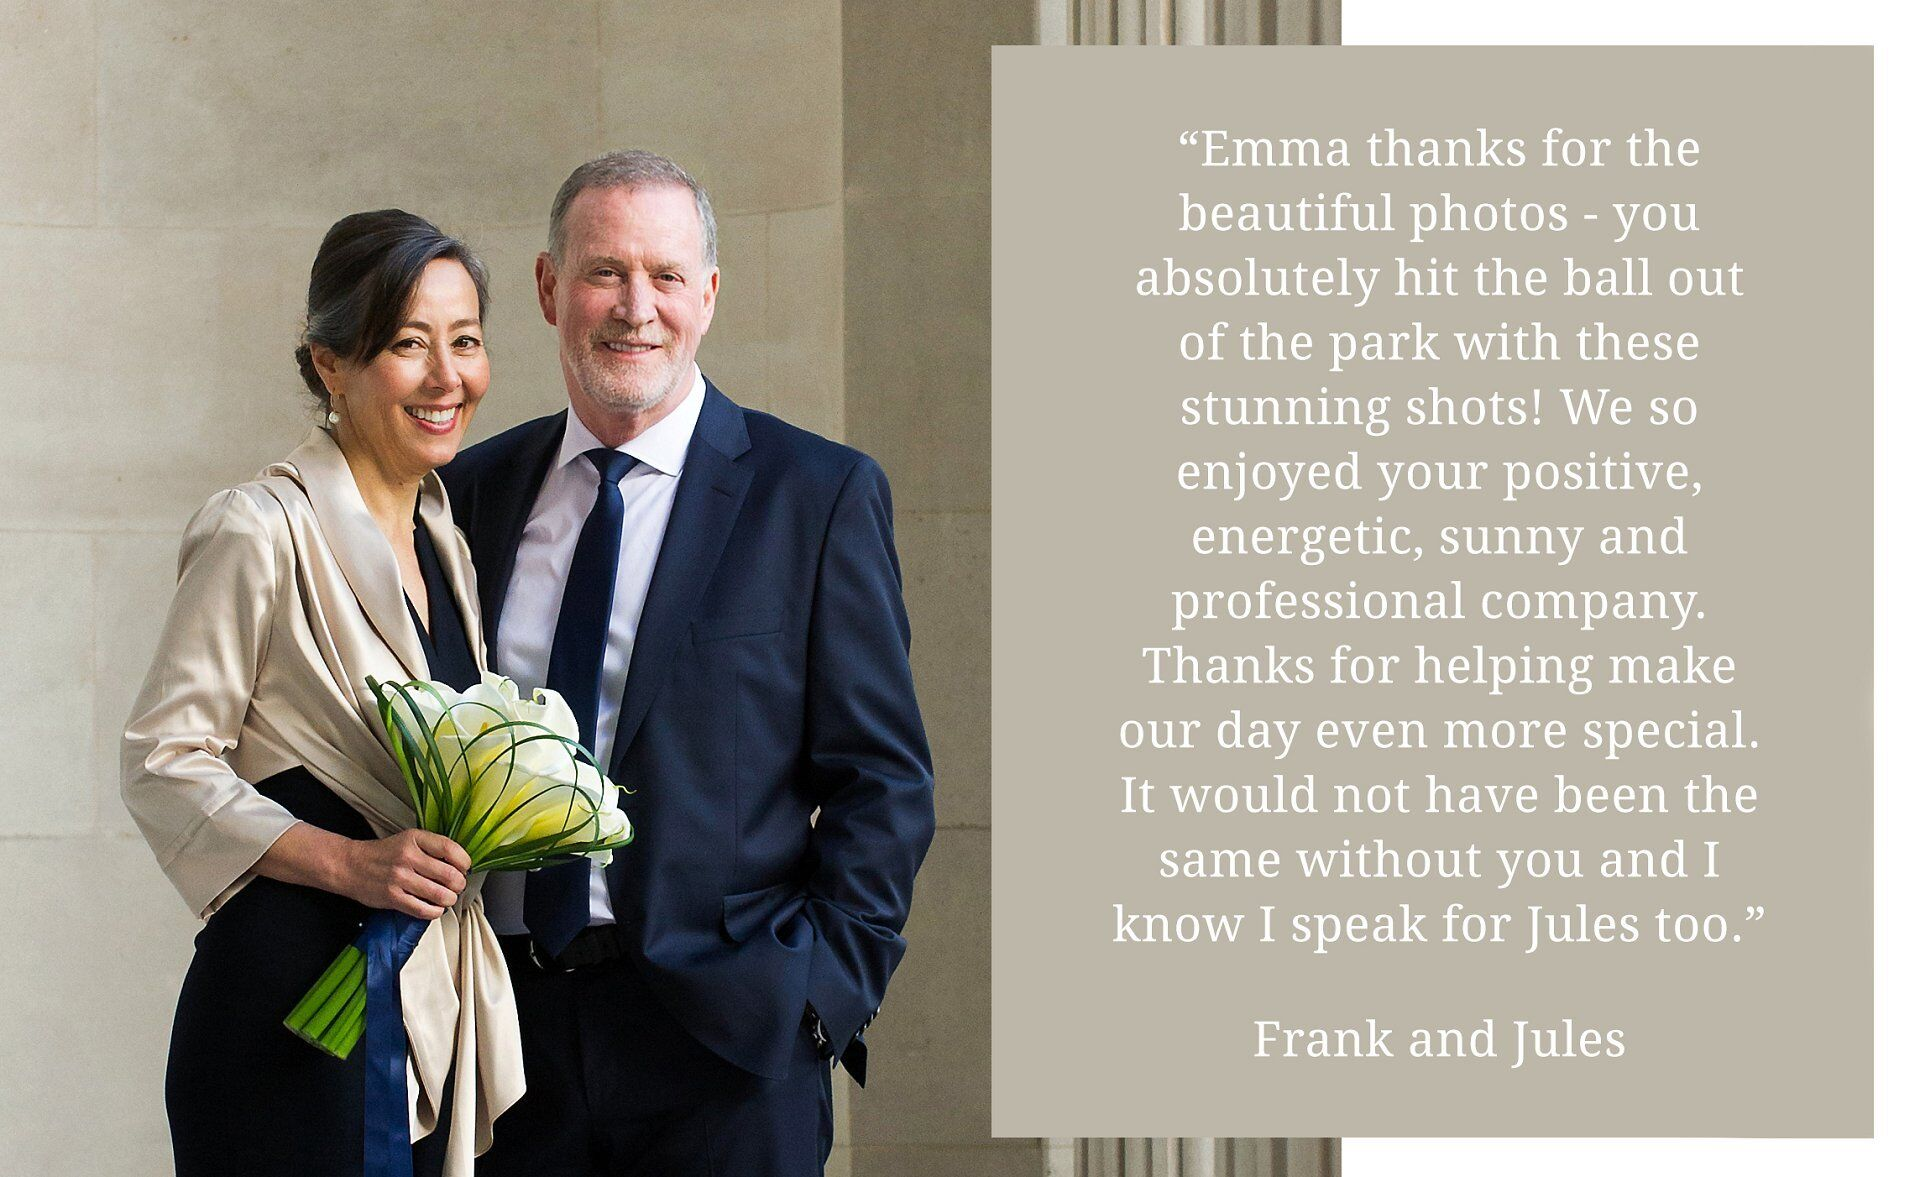 client testimonial - soho room wedding photography at westminster register office by recommended supplier, photographer emma duggan (at old marylebone town hall wedding photographer)